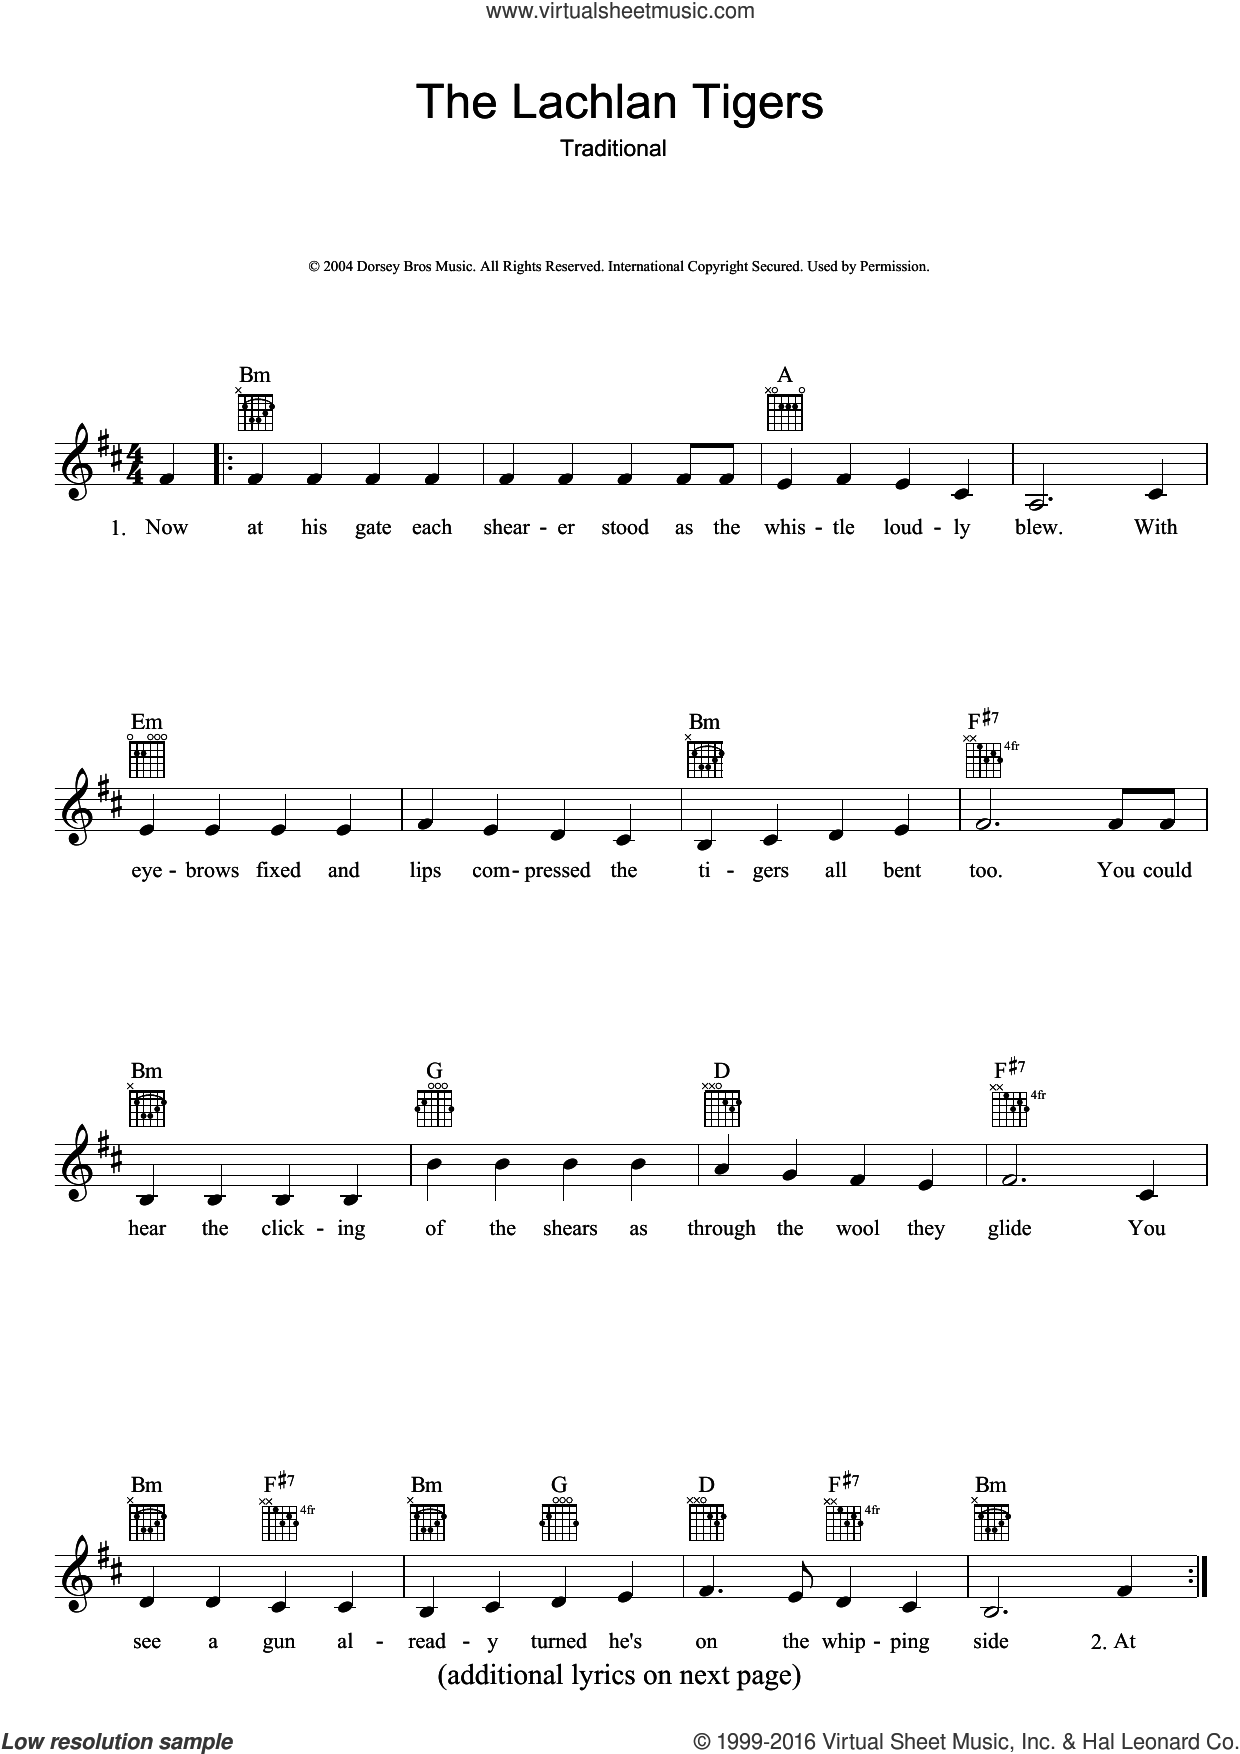 The Lachlan Tigers sheet music for voice and other instruments (fake book), intermediate skill level